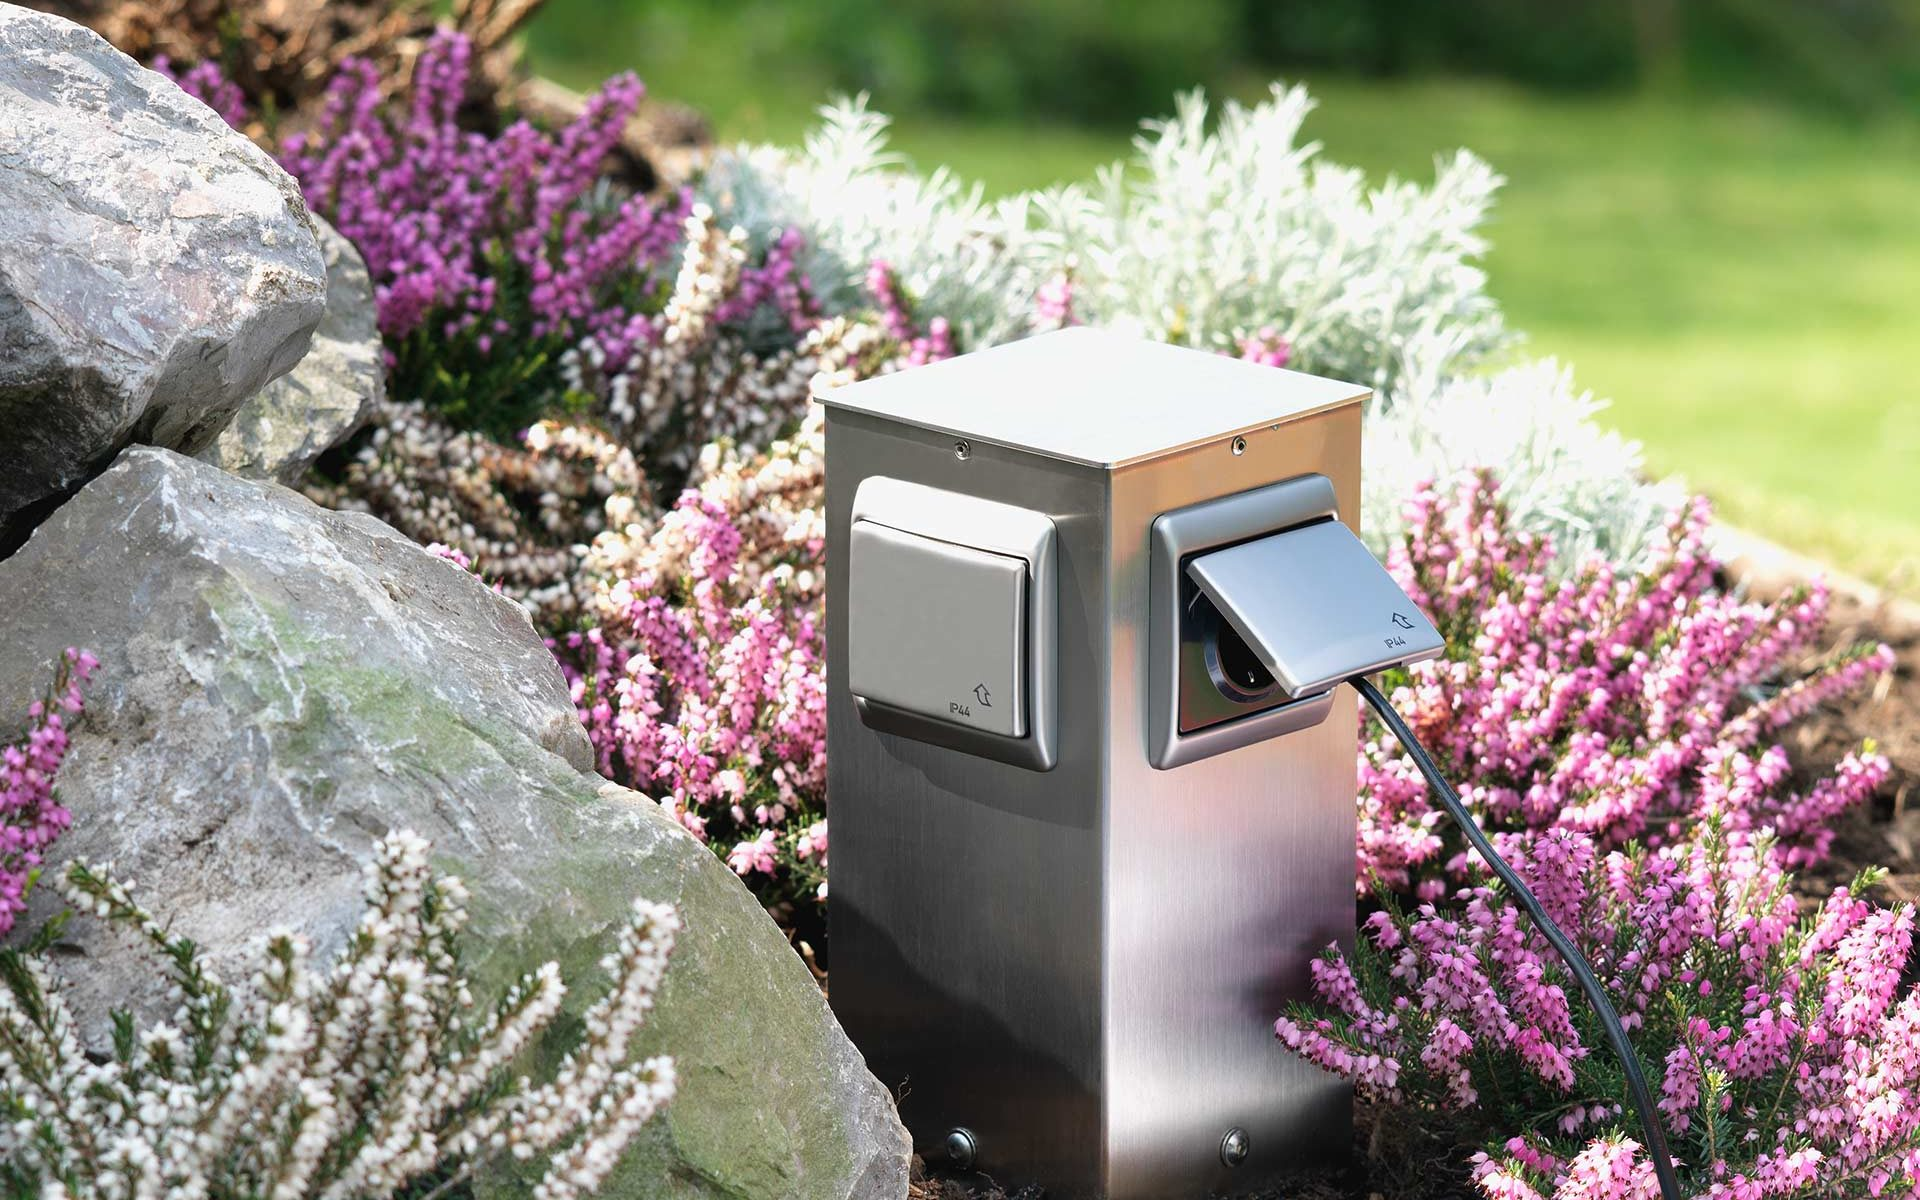 An inconspicuous stainless steel socket column provides power in a flowerbed.